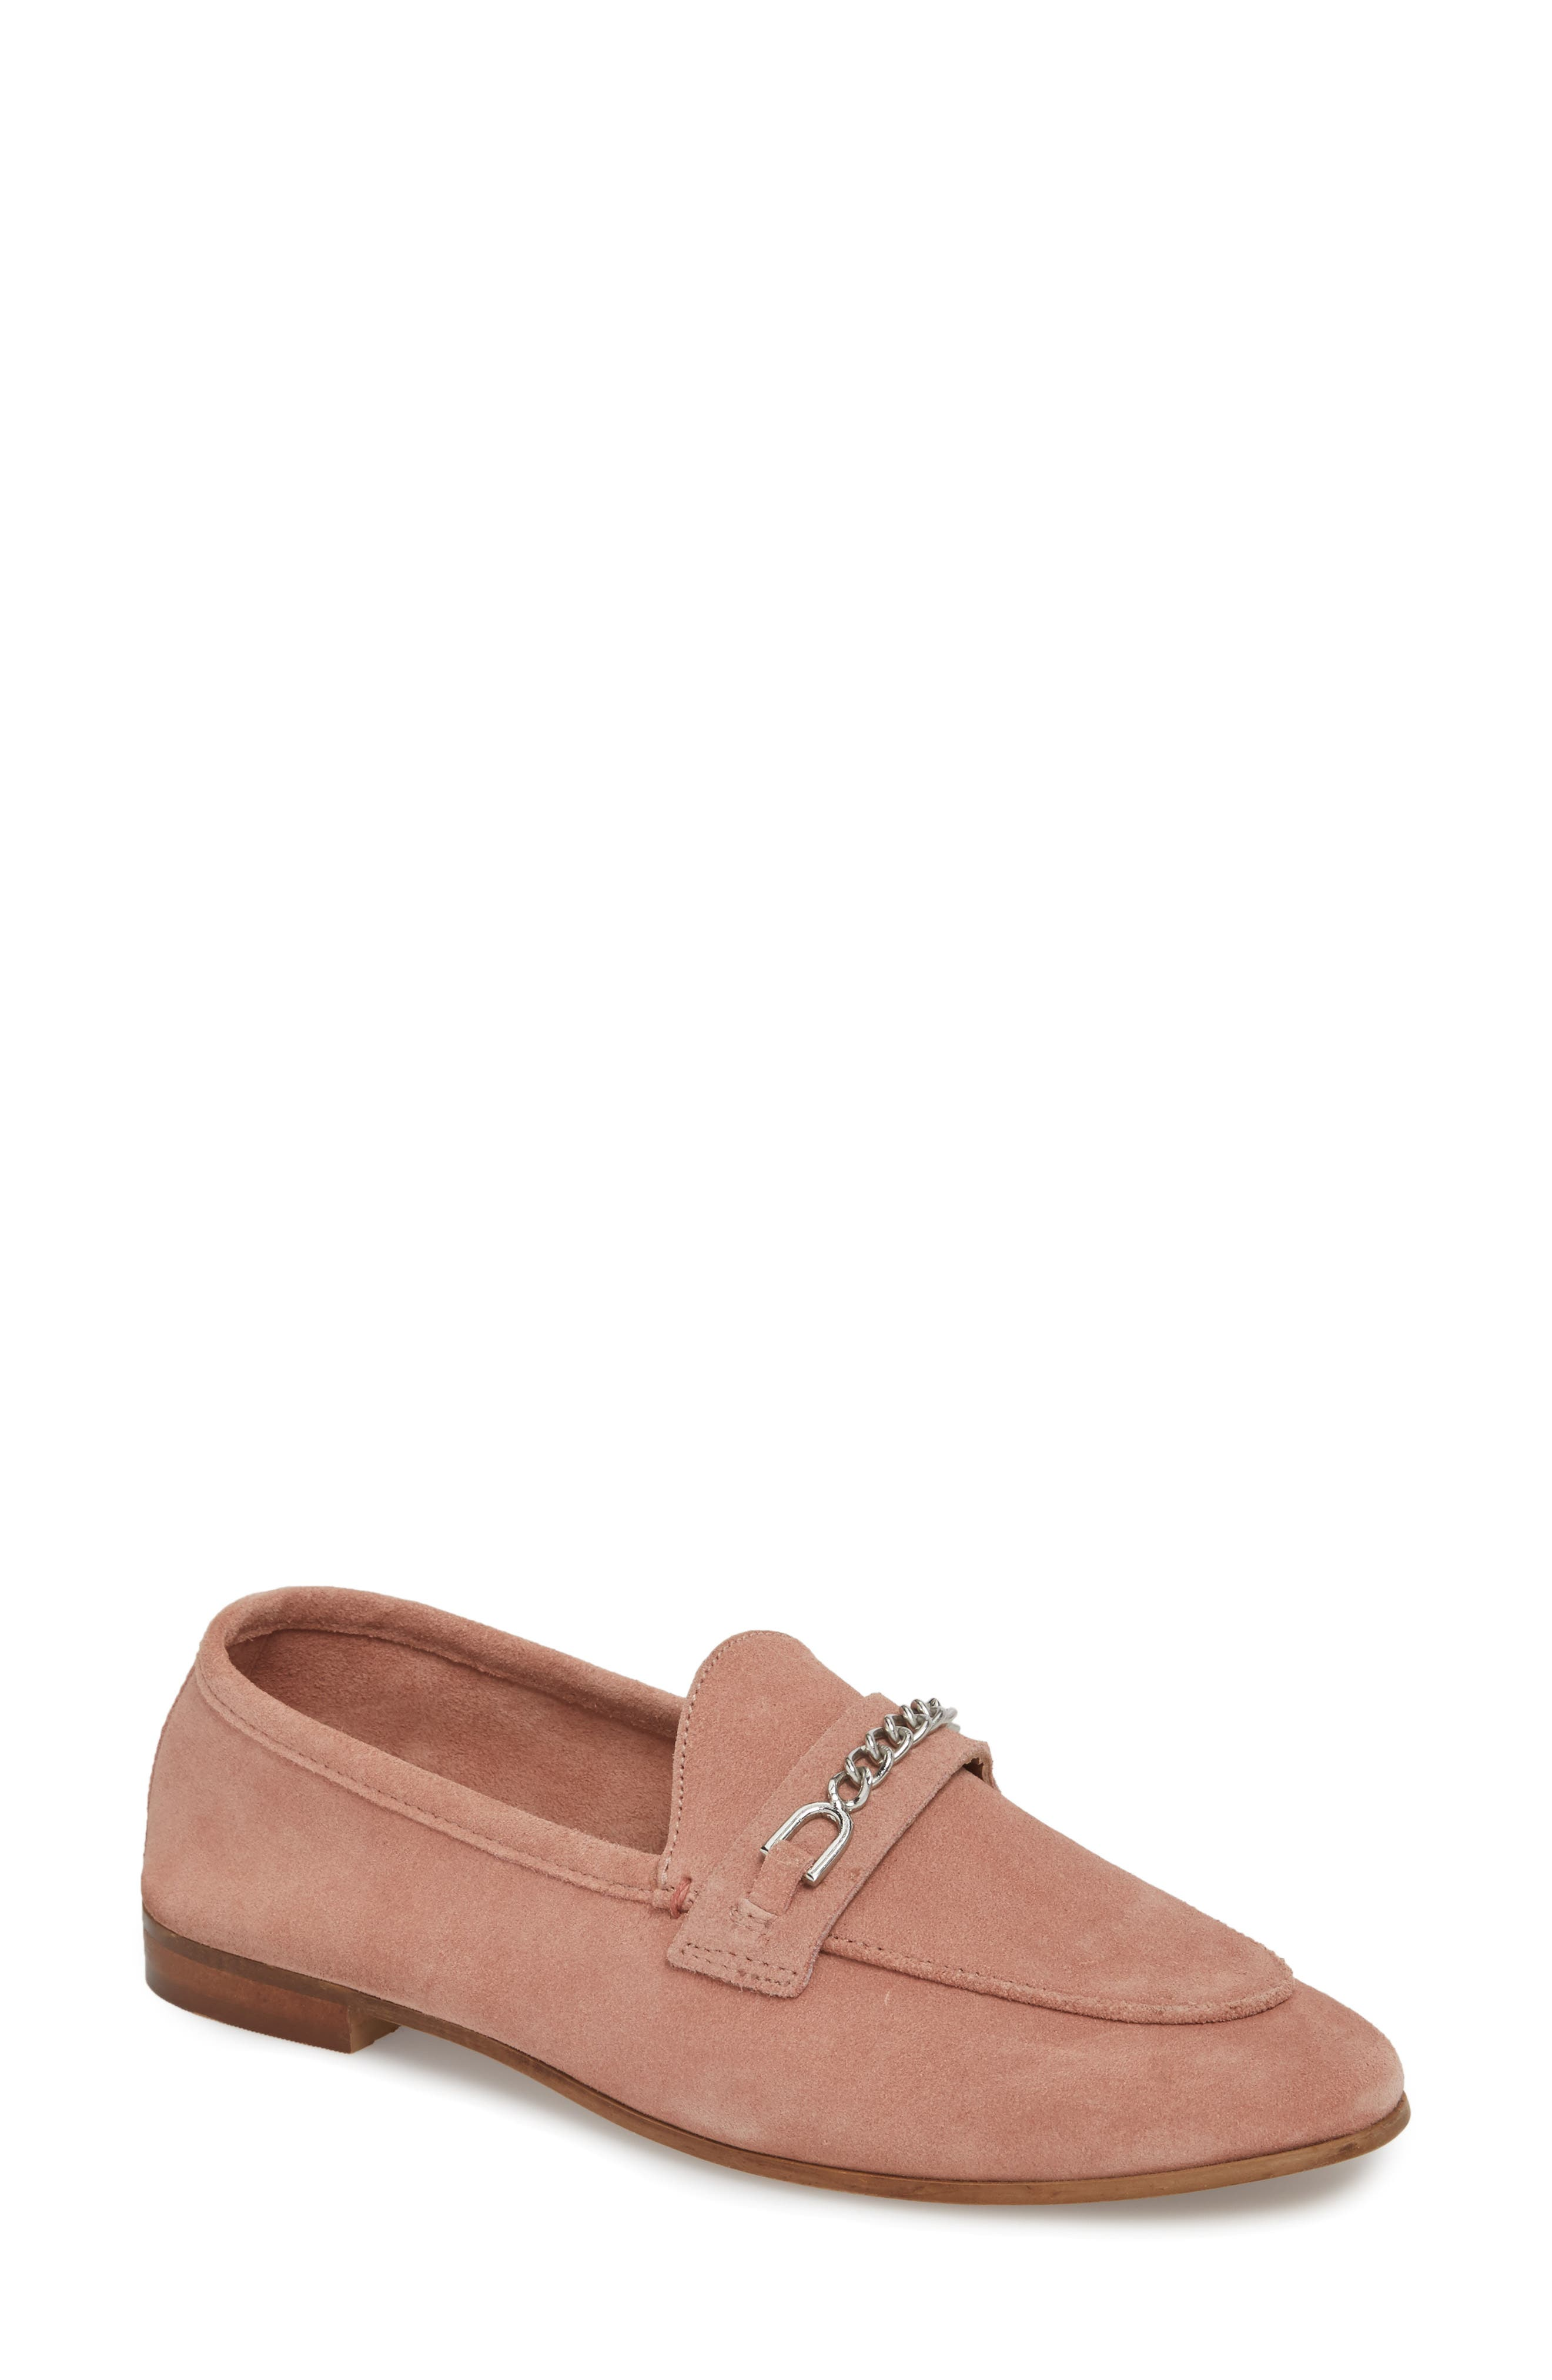 Key Trim Chain Loafer,                         Main,                         color, Pink Multi